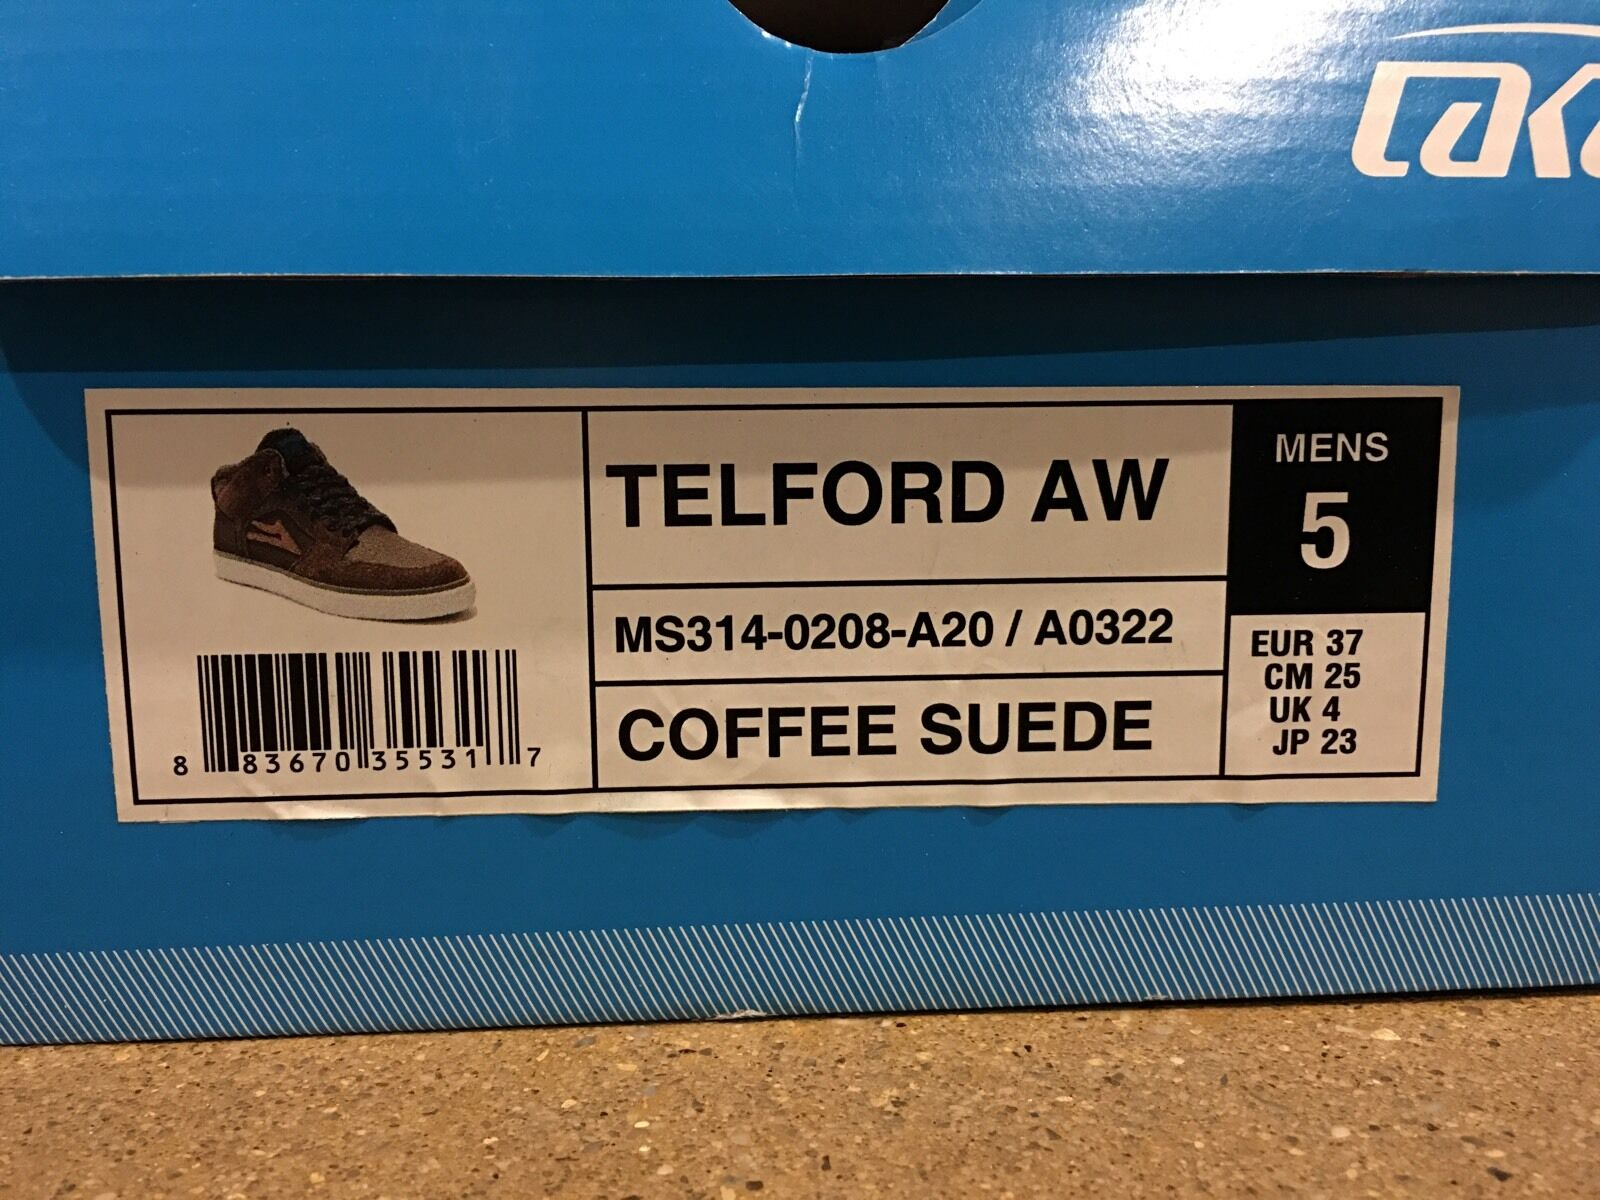 Lakai Telford Weather AW Size 5 Coffee Suede Weather Telford Treated SB BMX DC Skate Shoes 9047dc